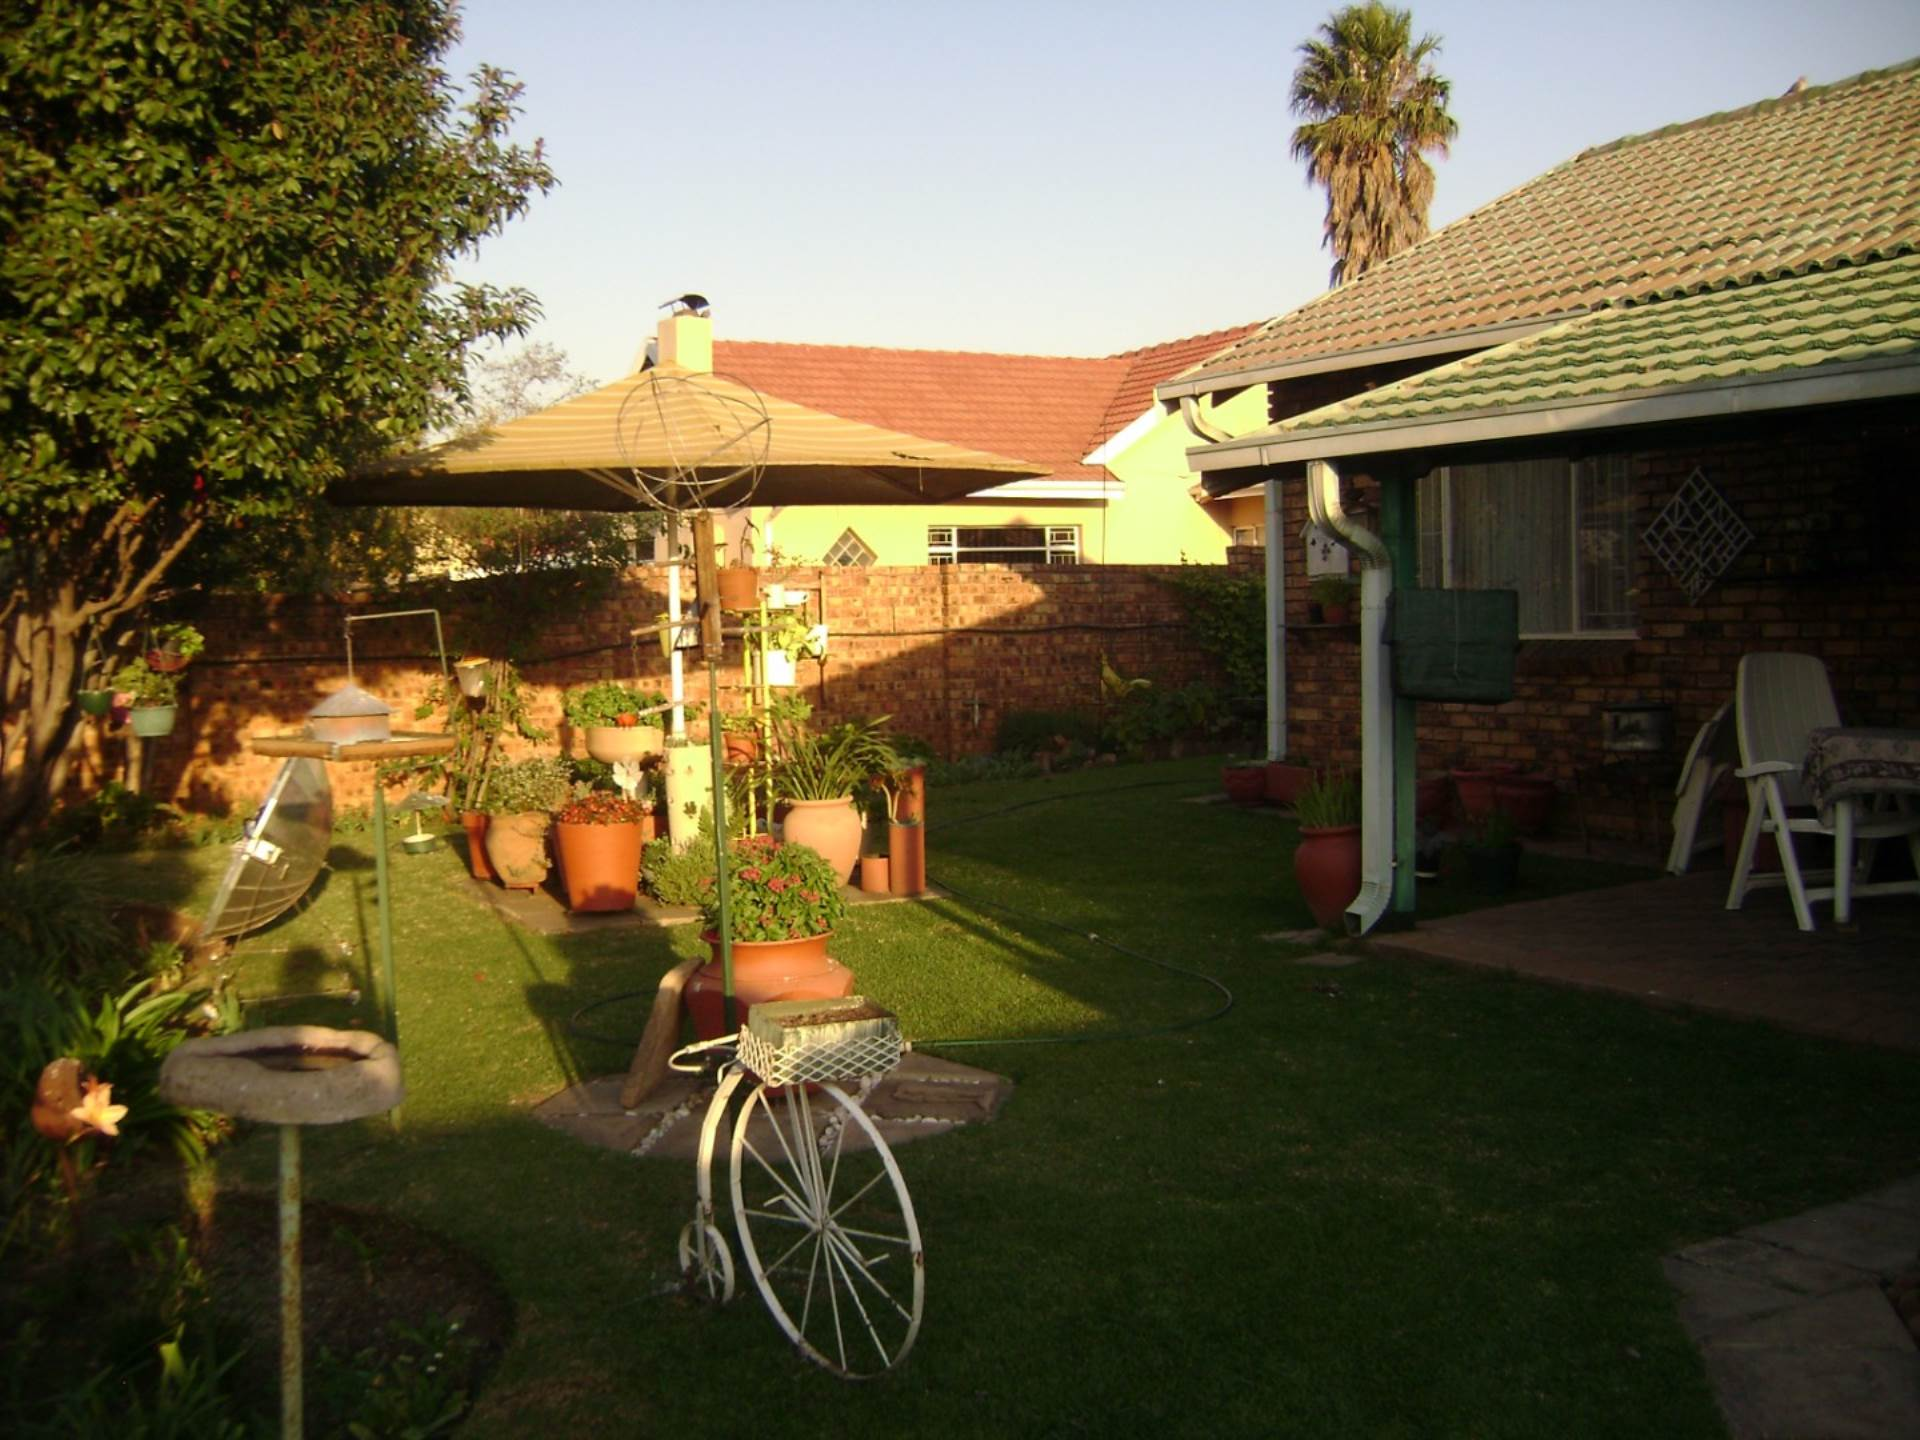 2 BedroomHouse For Sale In Middelburg South